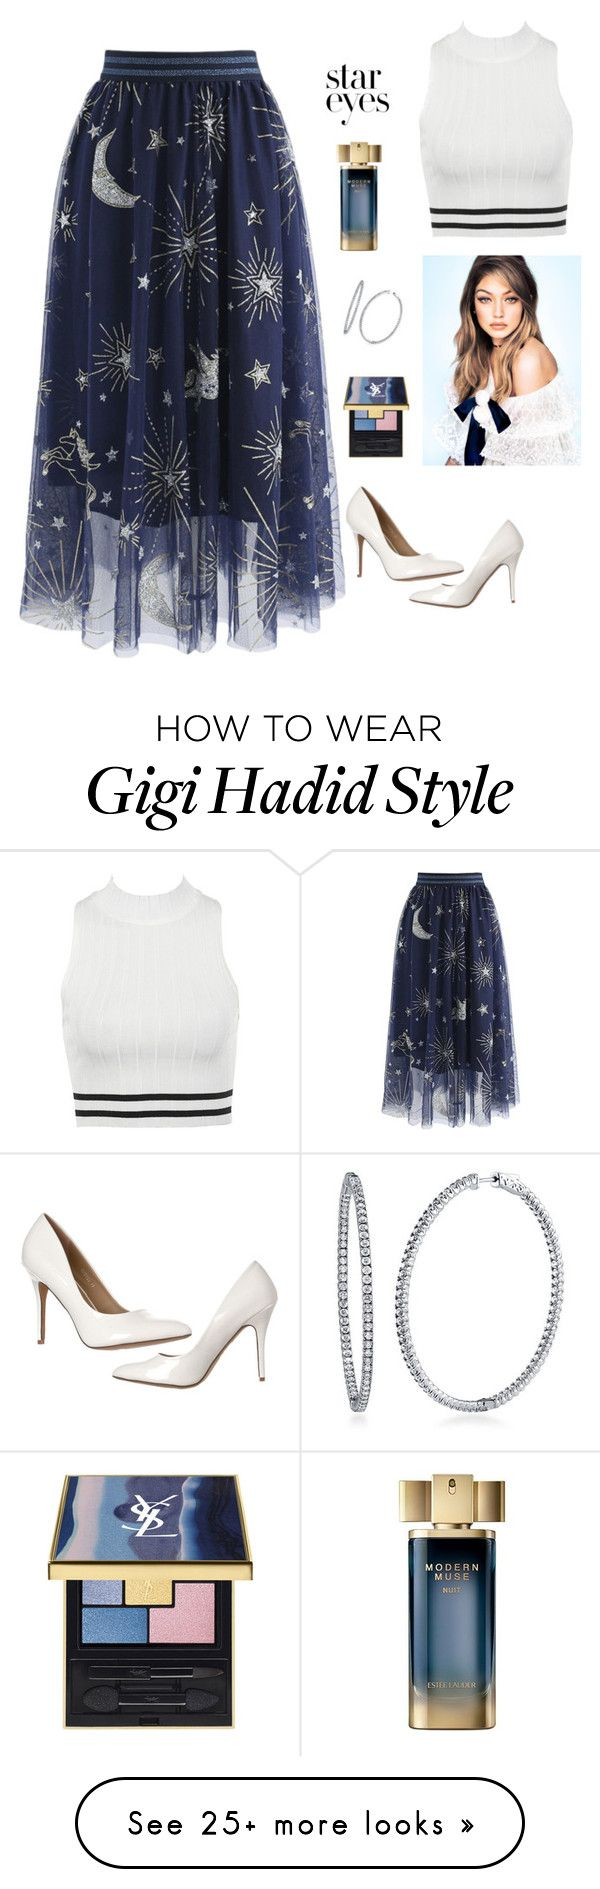 """Stars...."" by ivanazb on Polyvore featuring Chicwish, BERRICLE, Estée Lauder and StarOutfits"